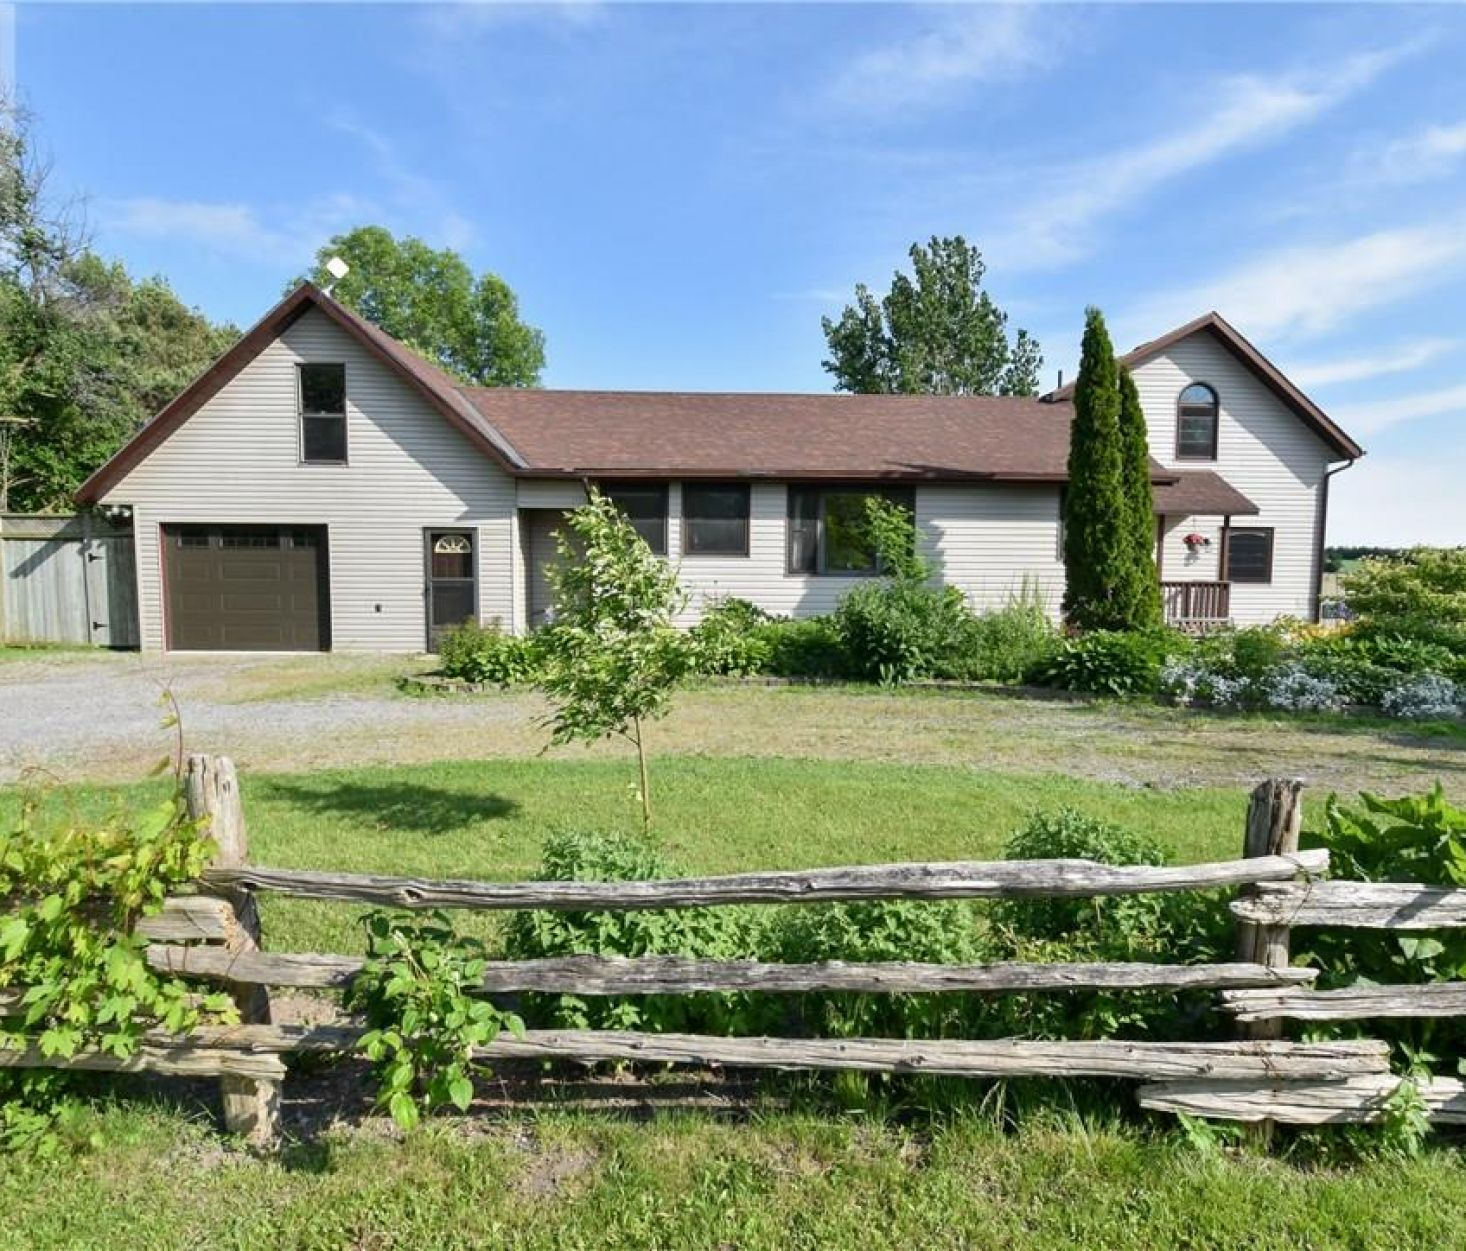 432 MASSASSAUGA ROAD, Prince Edward County***SOLD***